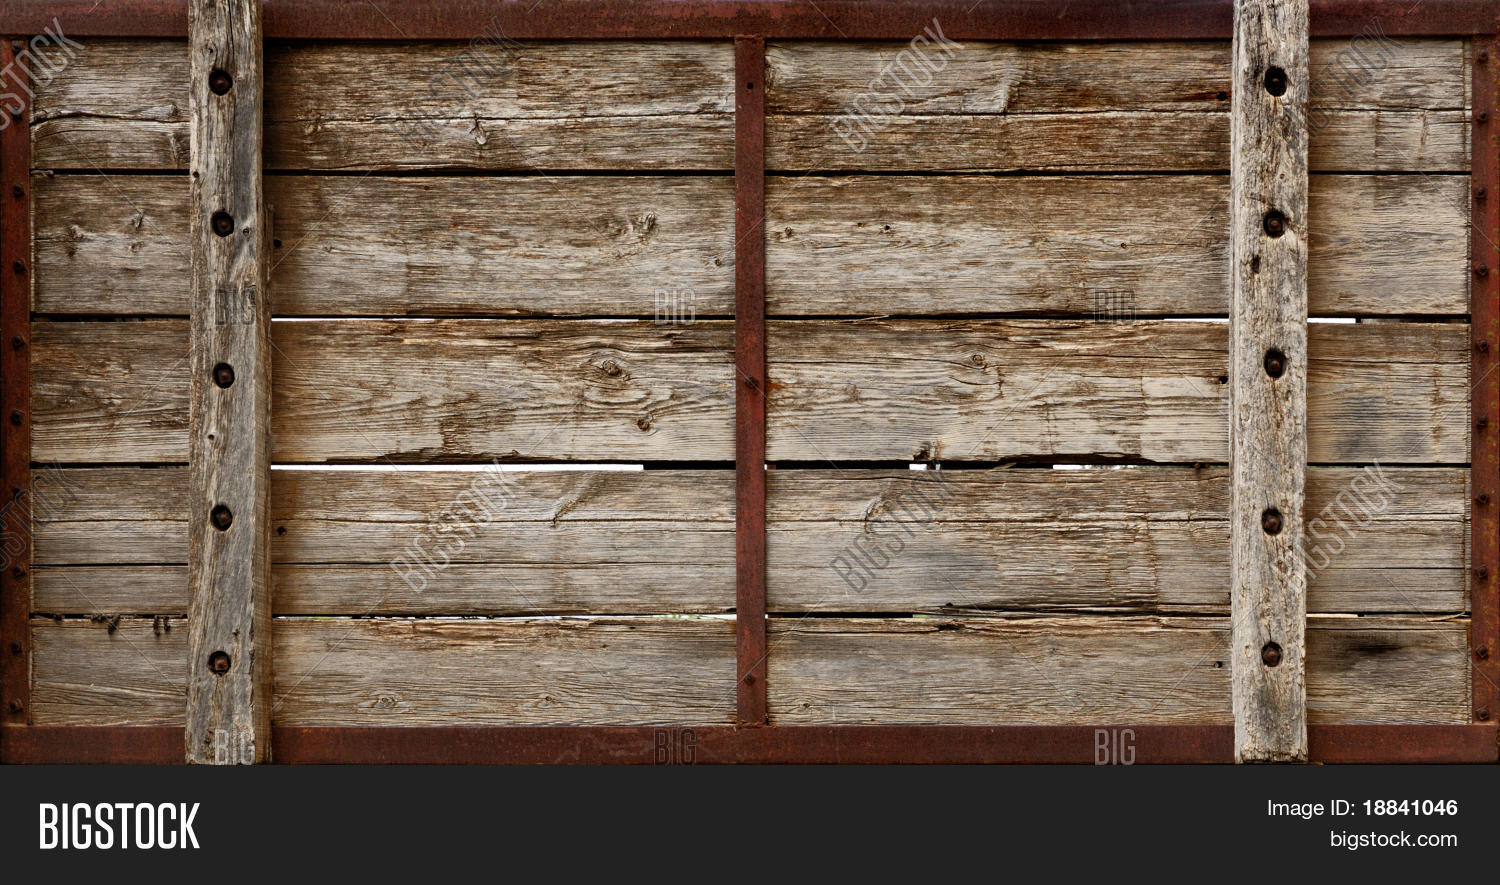 Large Wooden Crate Boards Grungy Texture Background